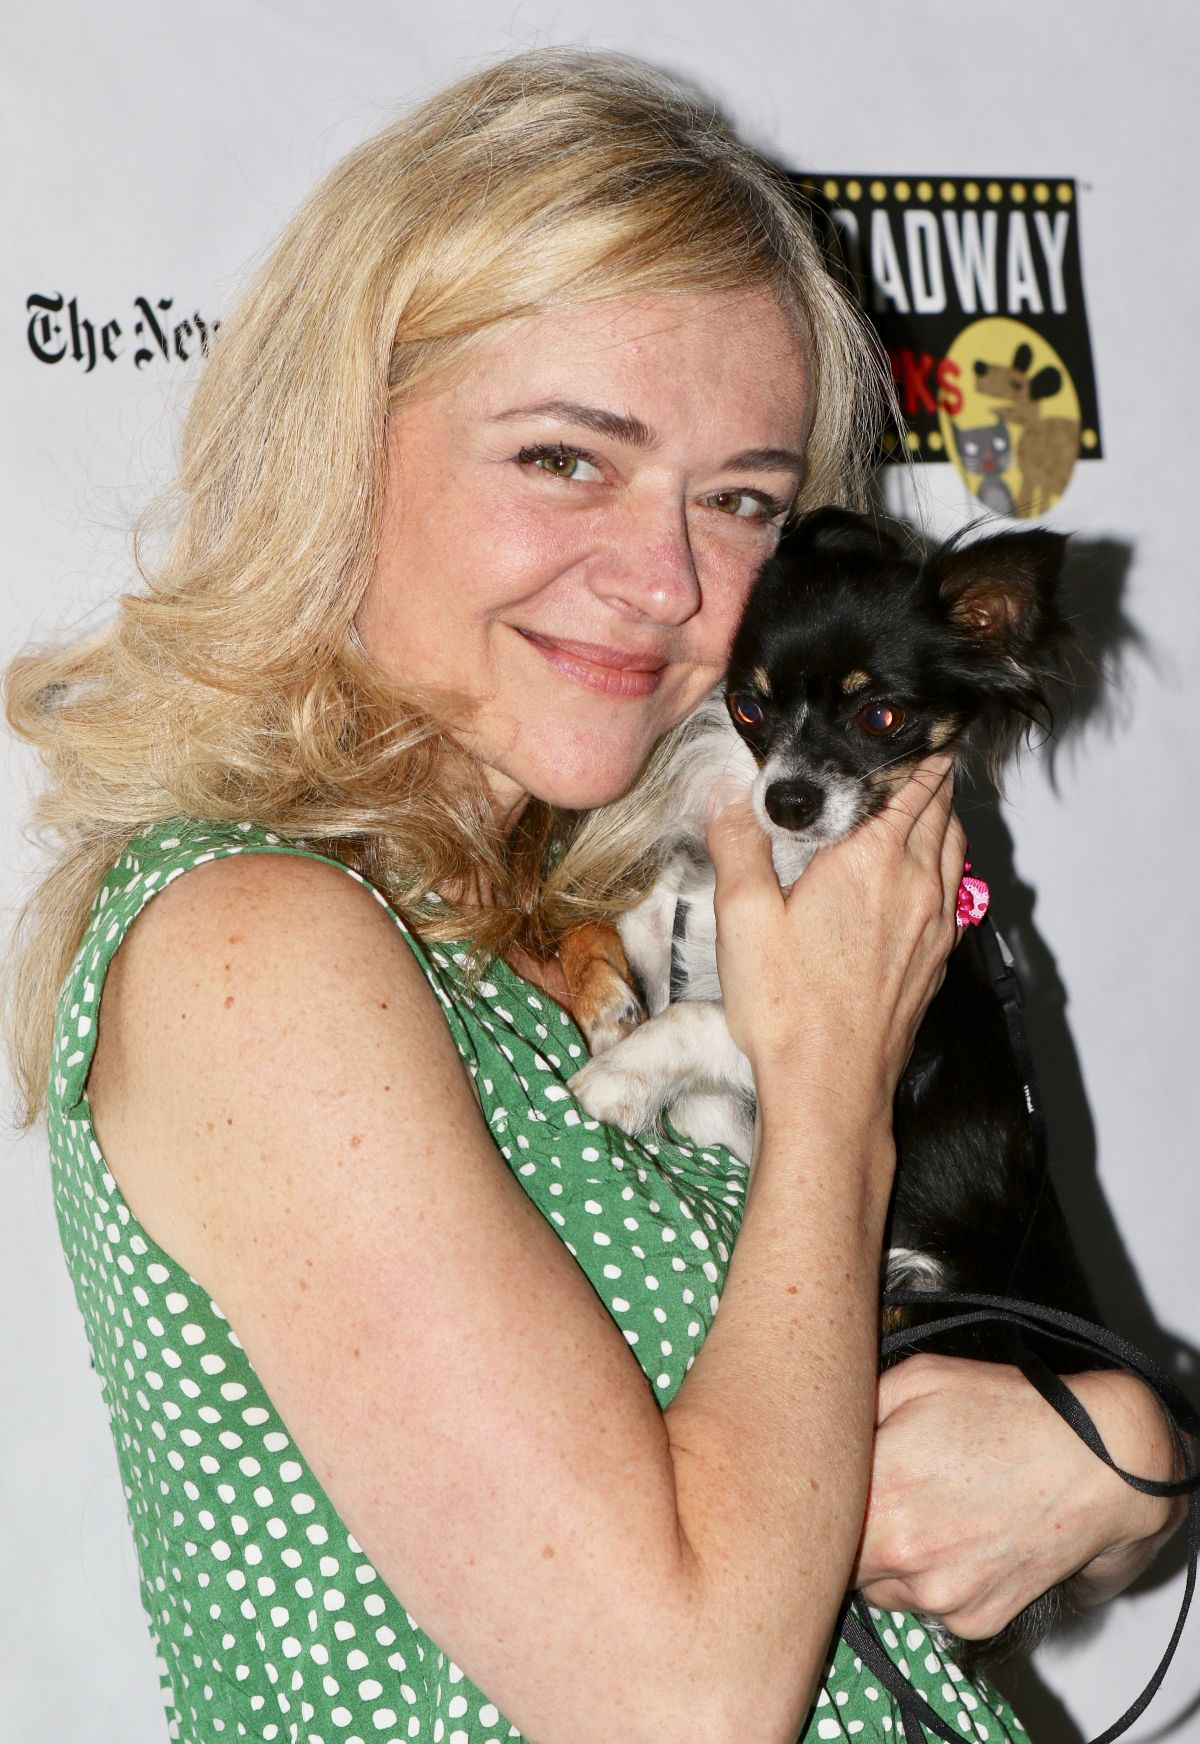 RACHEL BAY JONES at 19th Annual Broadway Barks Animal Adoption Event in New York 07/08/2017